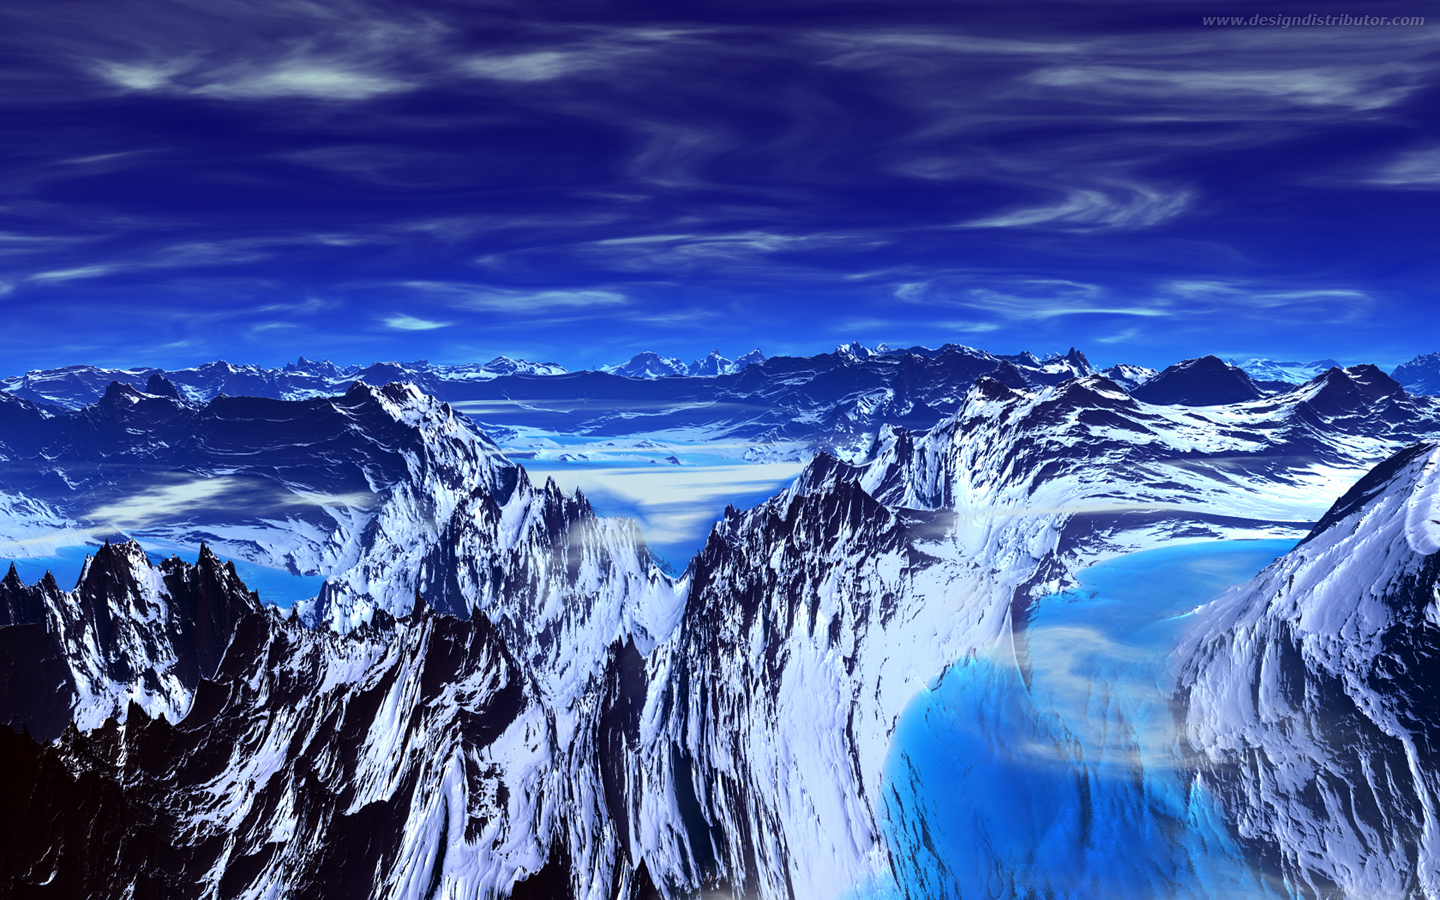 http://2.bp.blogspot.com/-CzQi6mh71Ks/ThNVQKeA8pI/AAAAAAAALBw/hUbwtvUu0ro/s1600/blue-HD-wide-wallpapers-1440x900.jpg